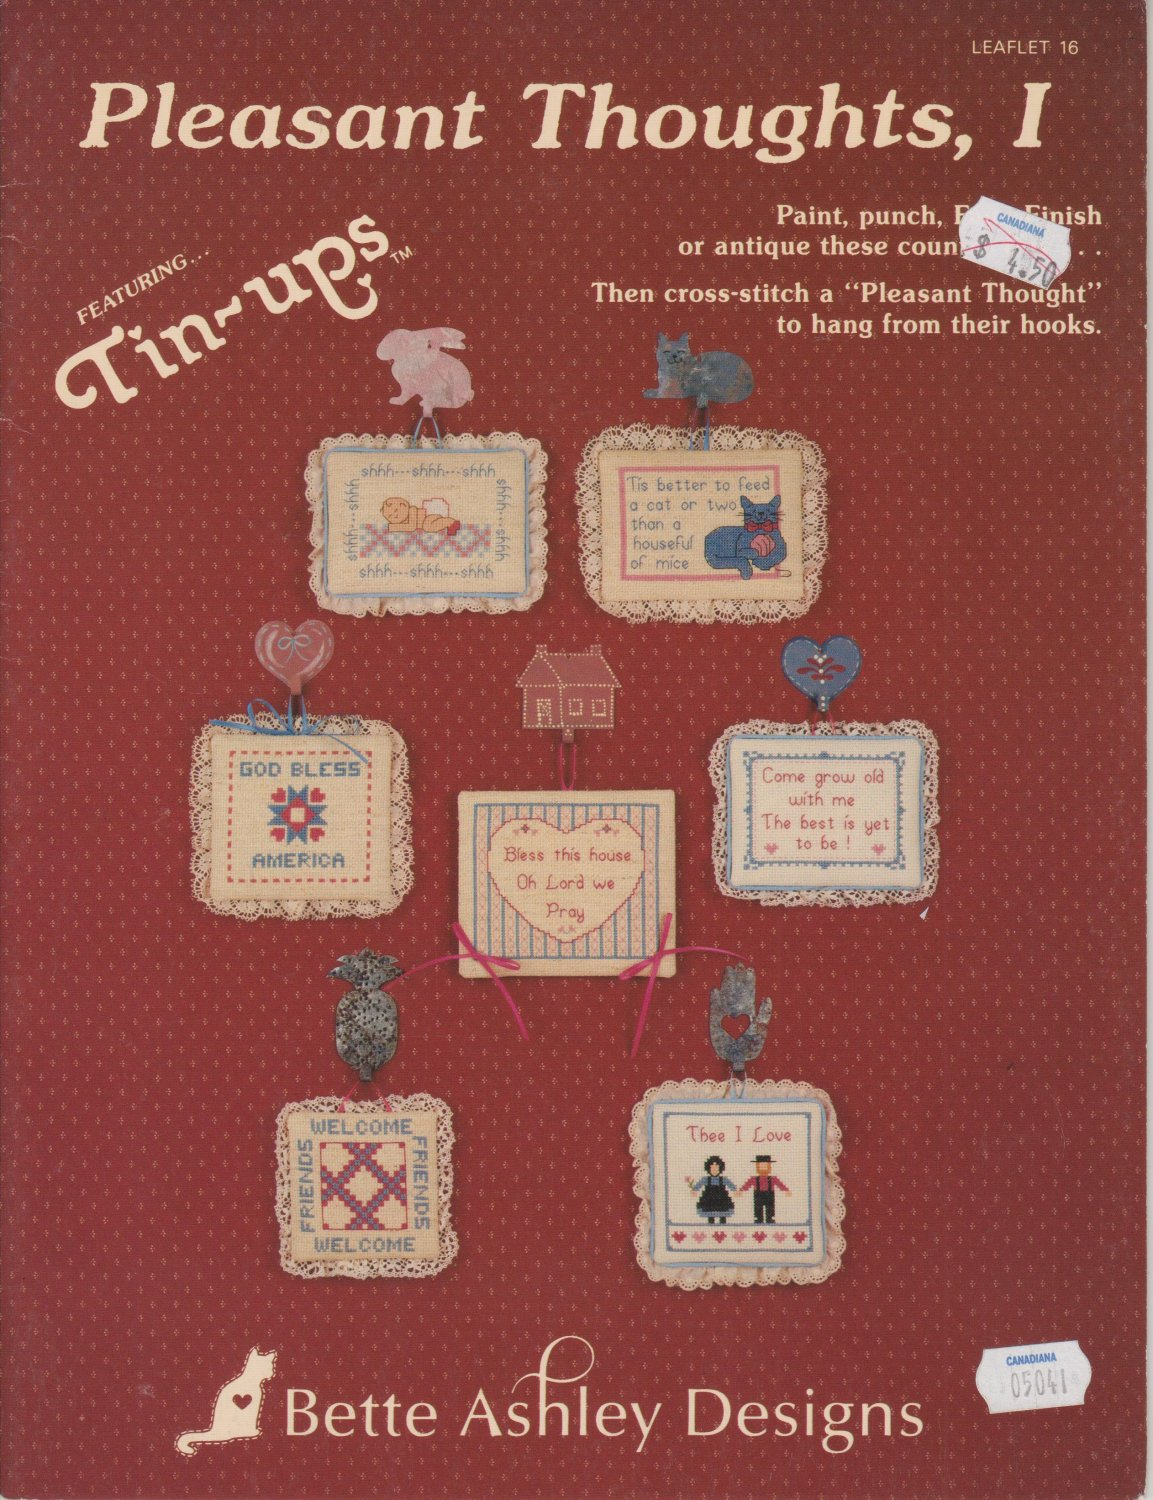 Betty Asley Designs 1987 Cross Stitch Pattern Leaflet 16 Pleasant Thoughts I